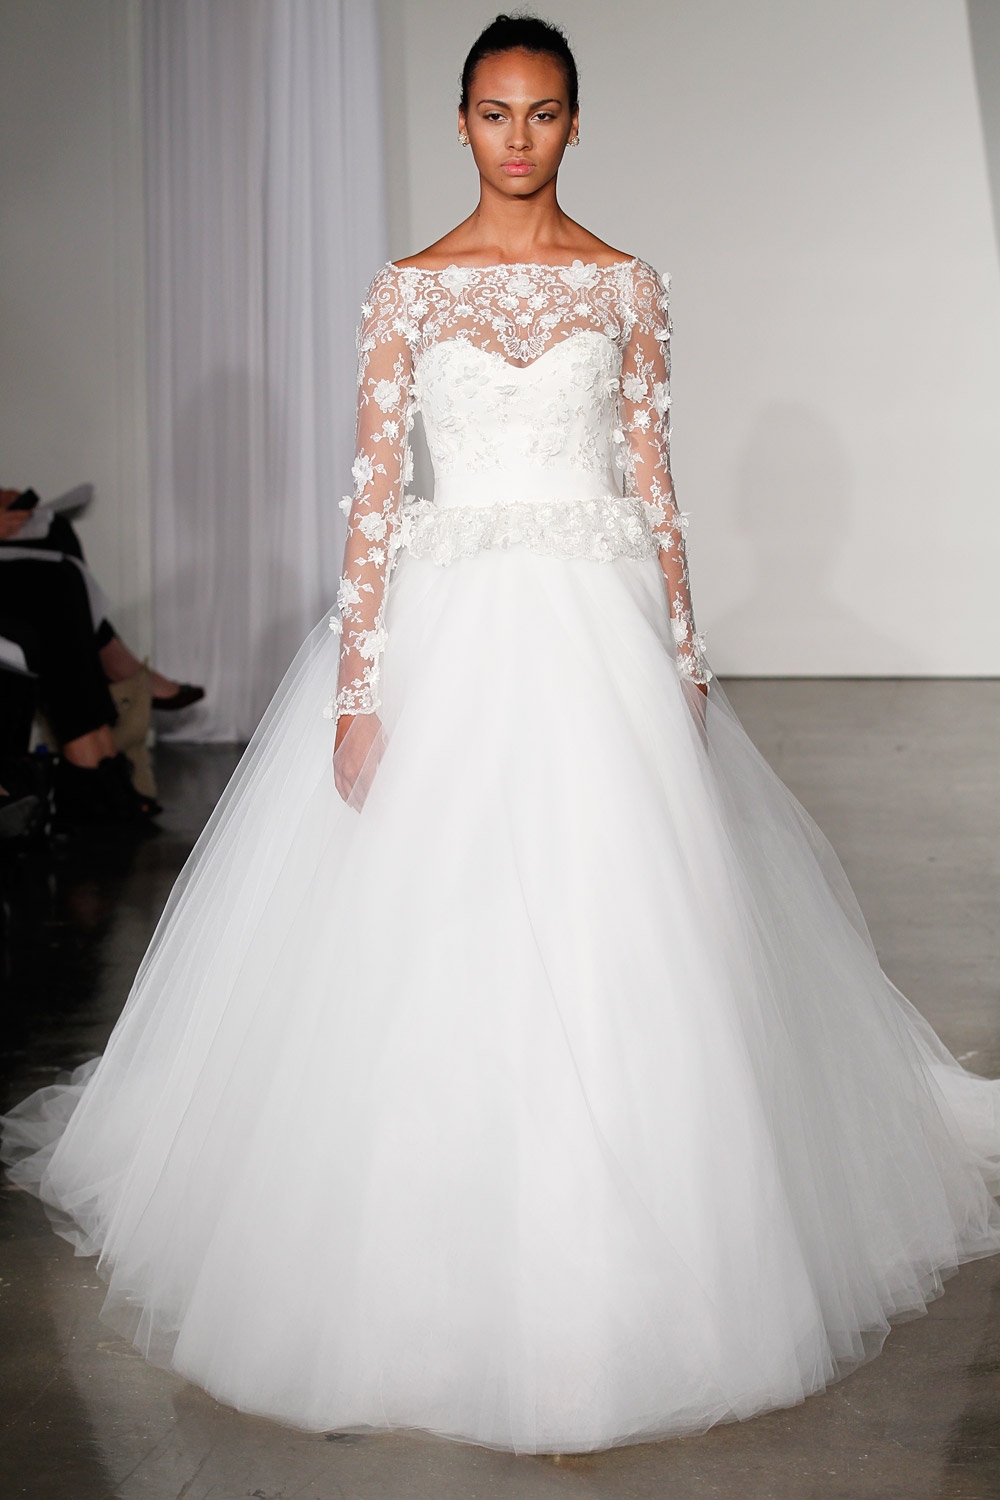 Enchanting marchesa wedding dresses modwedding marchesa wedding dresses 14 02012014 junglespirit Images